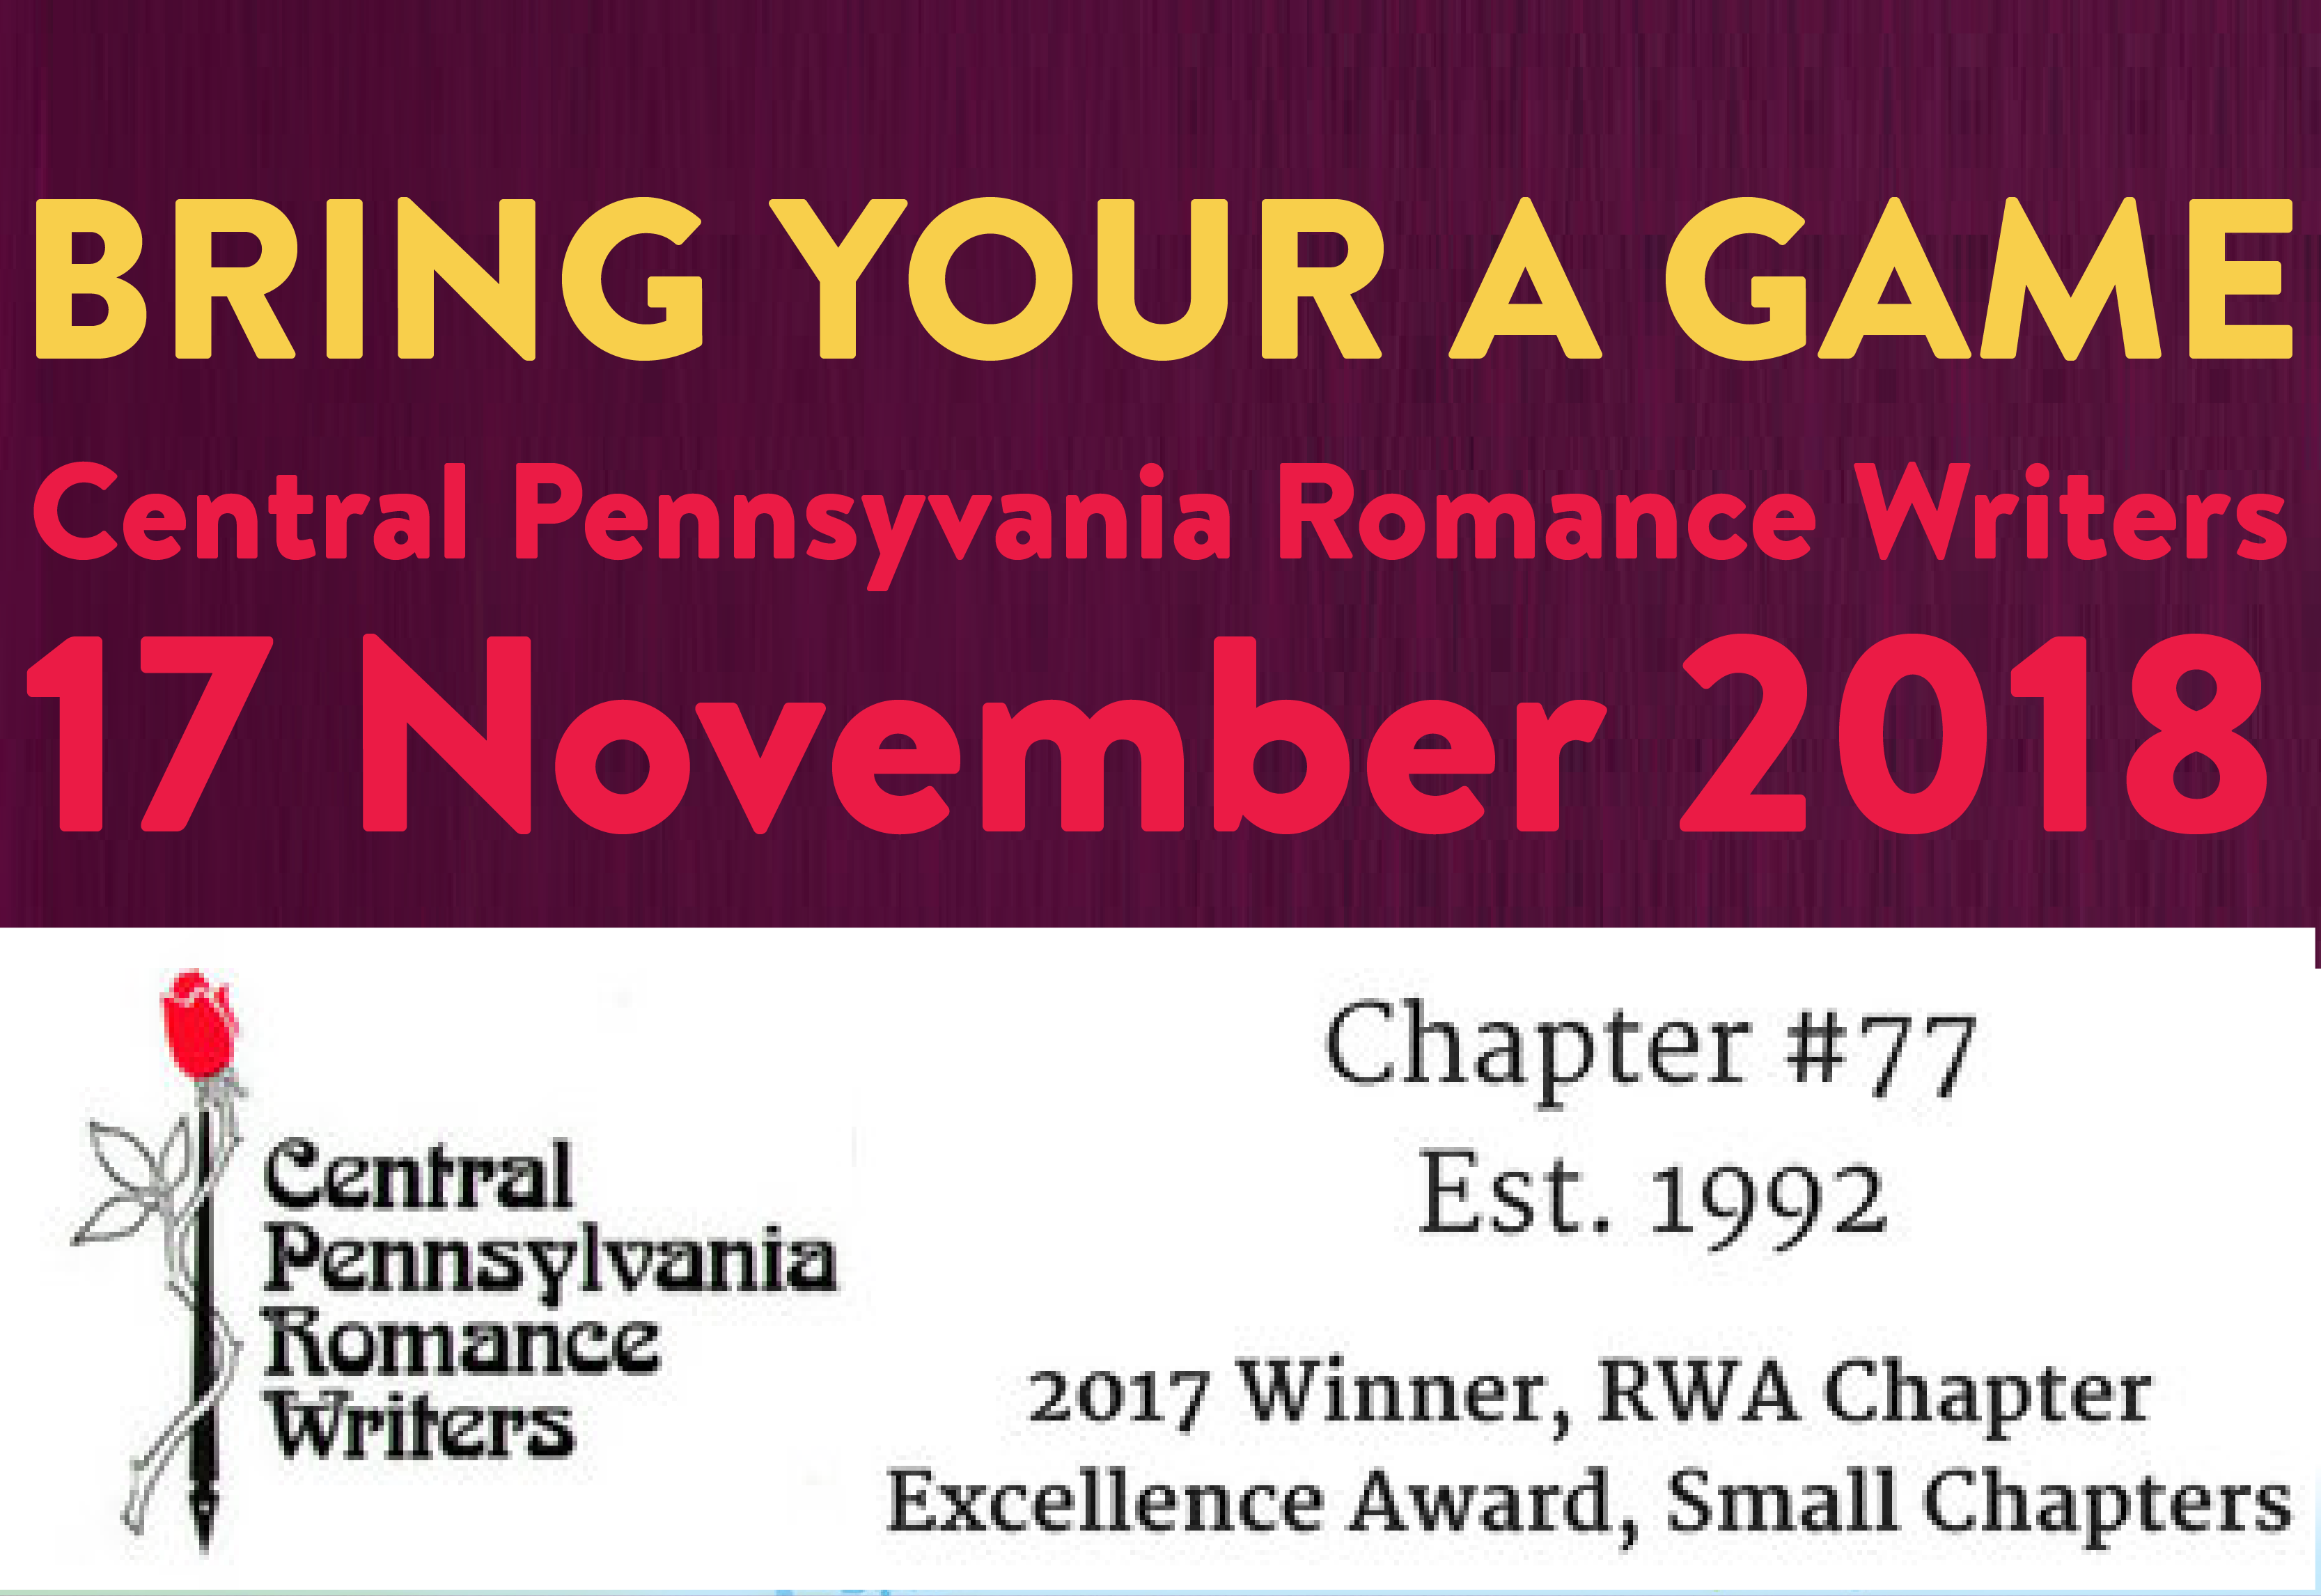 Central Pennsylvania Romance Writers (Harrisburg, PA)